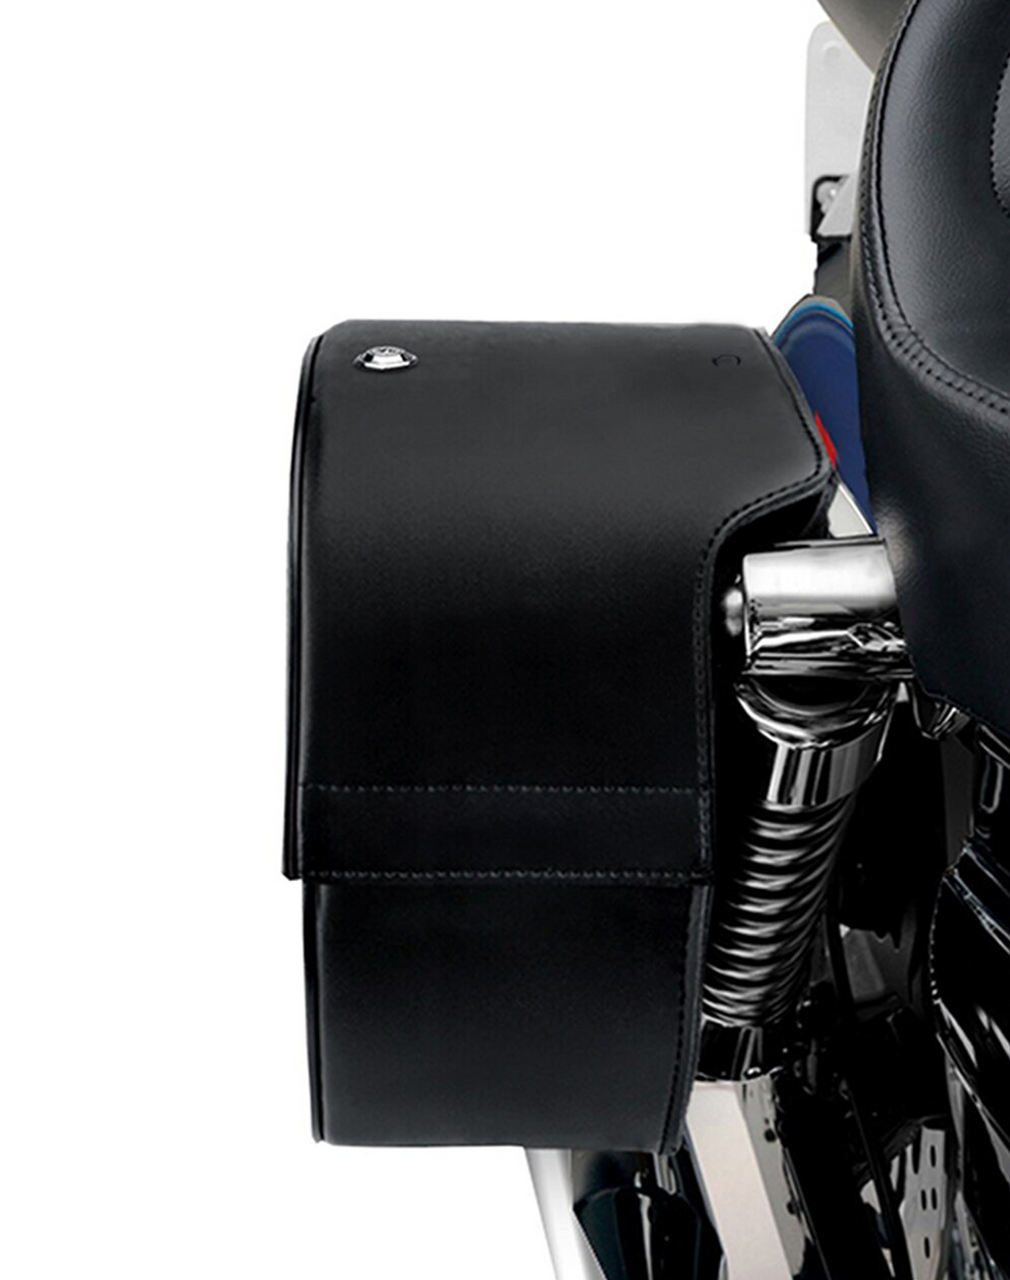 Viking Large Shock Cutout Slanted Studded Motorcycle Saddlebags For Harley Sportster 1200 Nightster XL1200N Shock cutout view